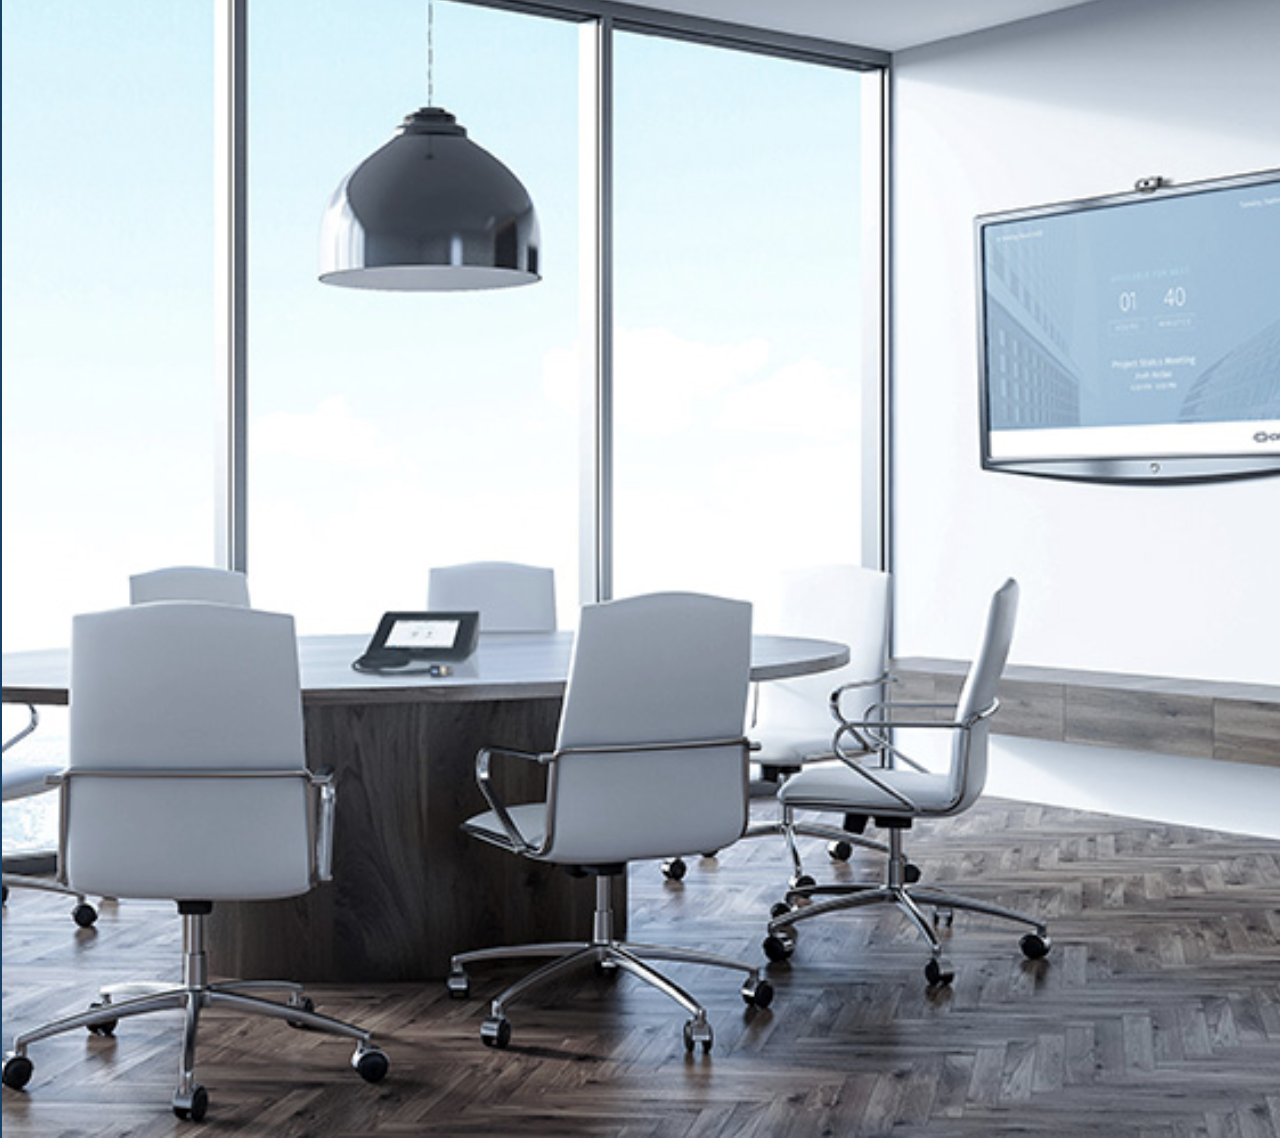 Small to Medium Meeting Room4 - 12 people - More than just a center of table device, Crestron Mercury™ conference system is the core of modern meeting spaces. You get everything you need to call, present, and video conference using any service.